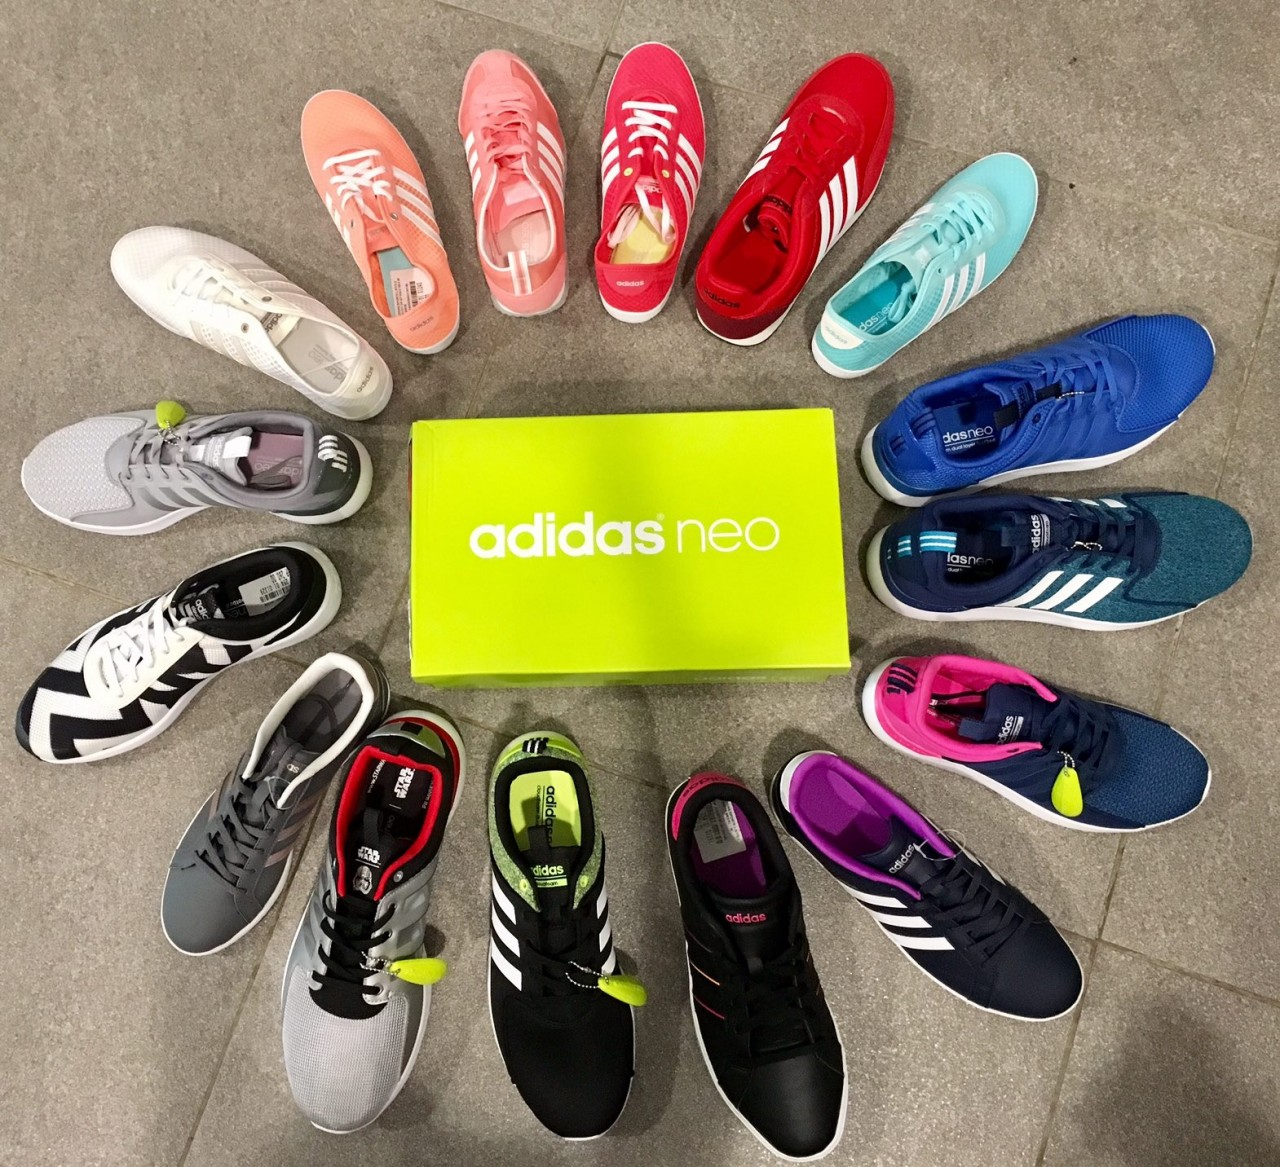 10 places in Johor Malaysia where you can buy branded sneakers under ... 90f1b12d47